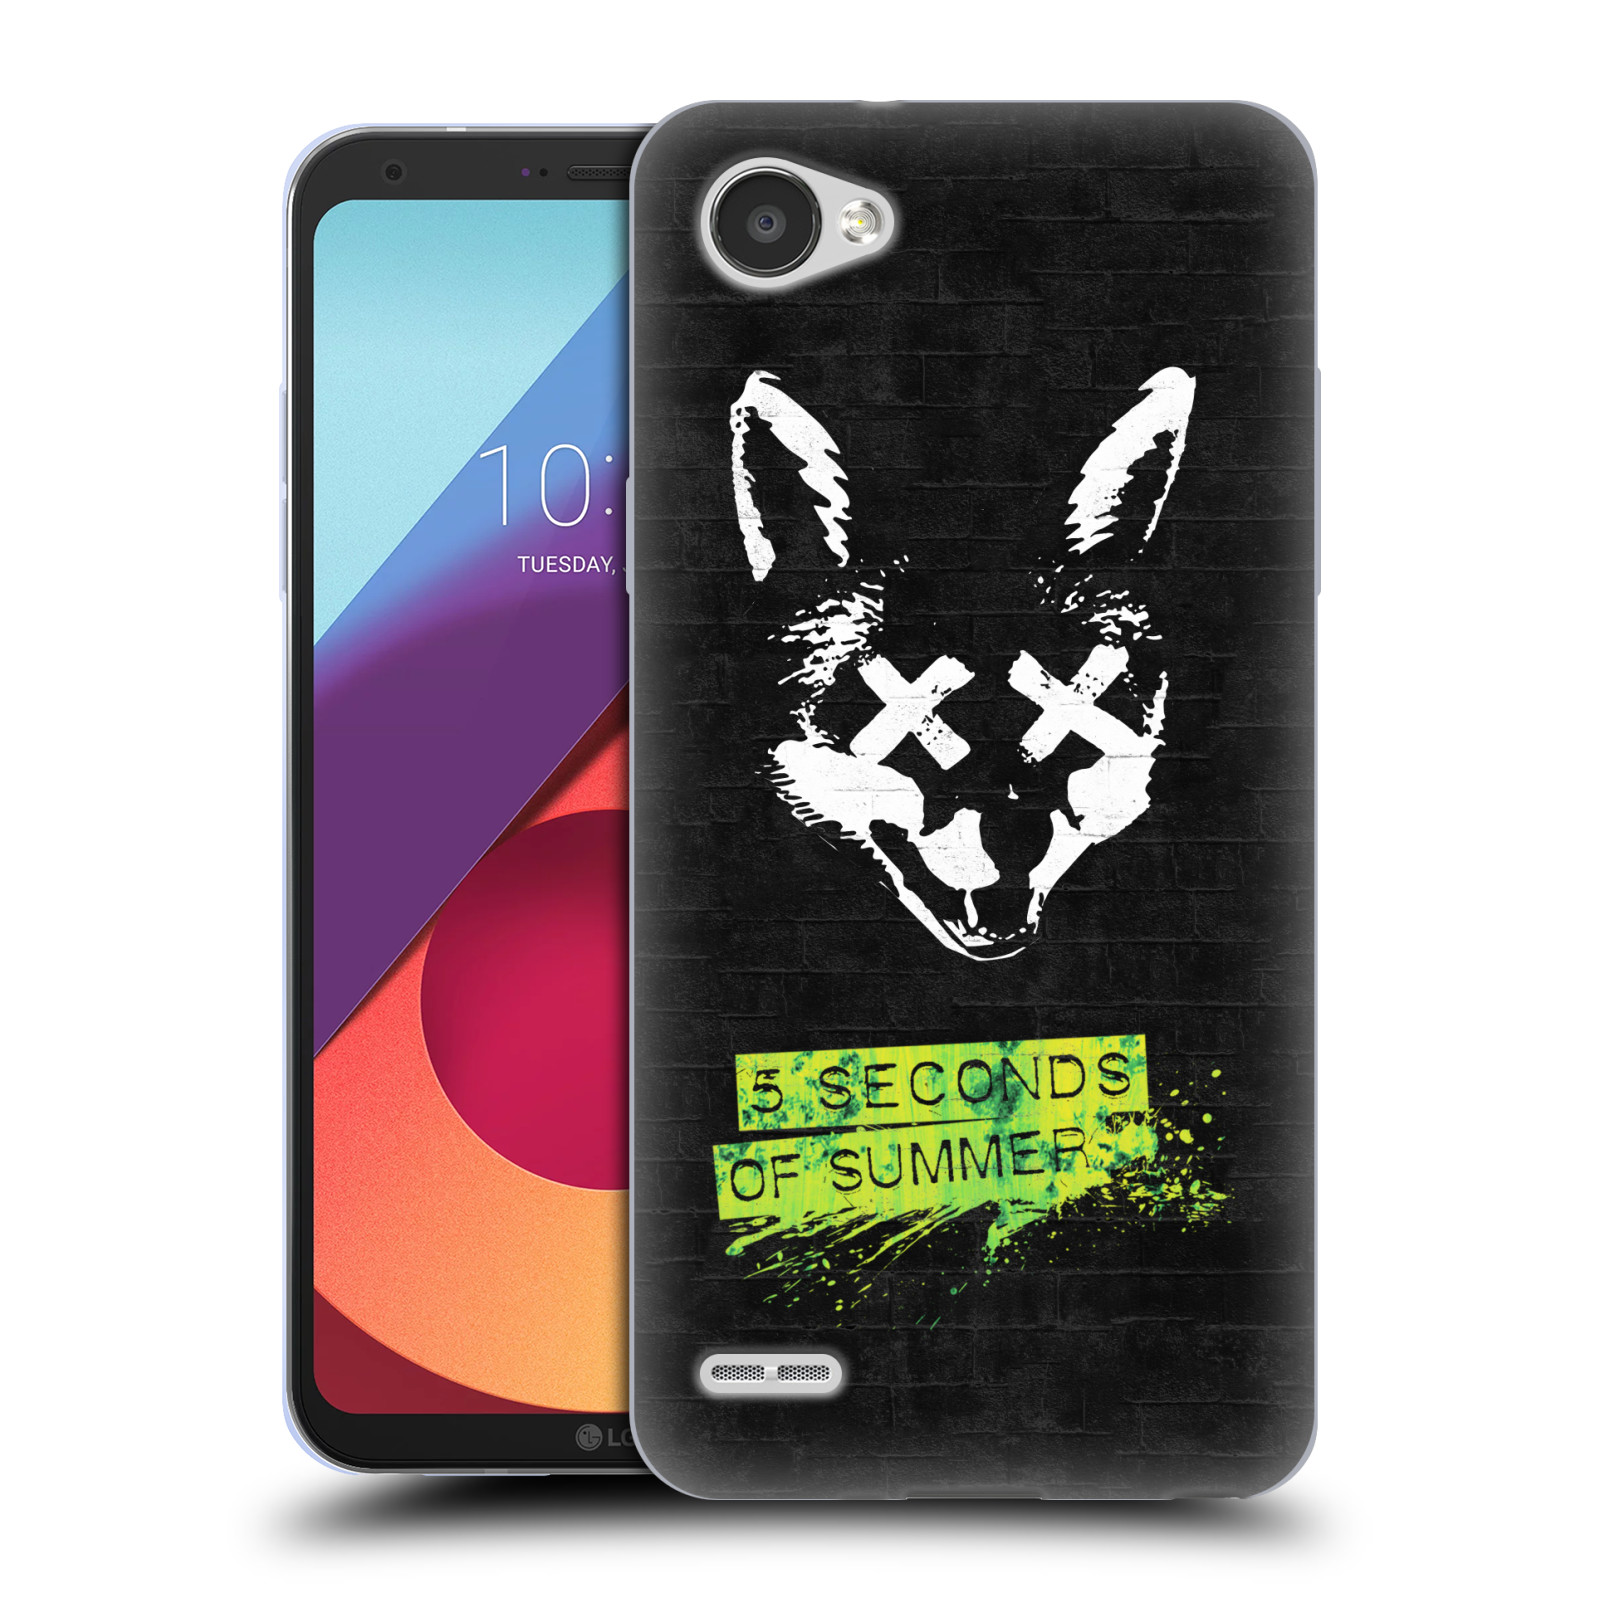 Silikonové pouzdro na mobil LG Q6 - Head Case - 5 Seconds of Summer - Fox